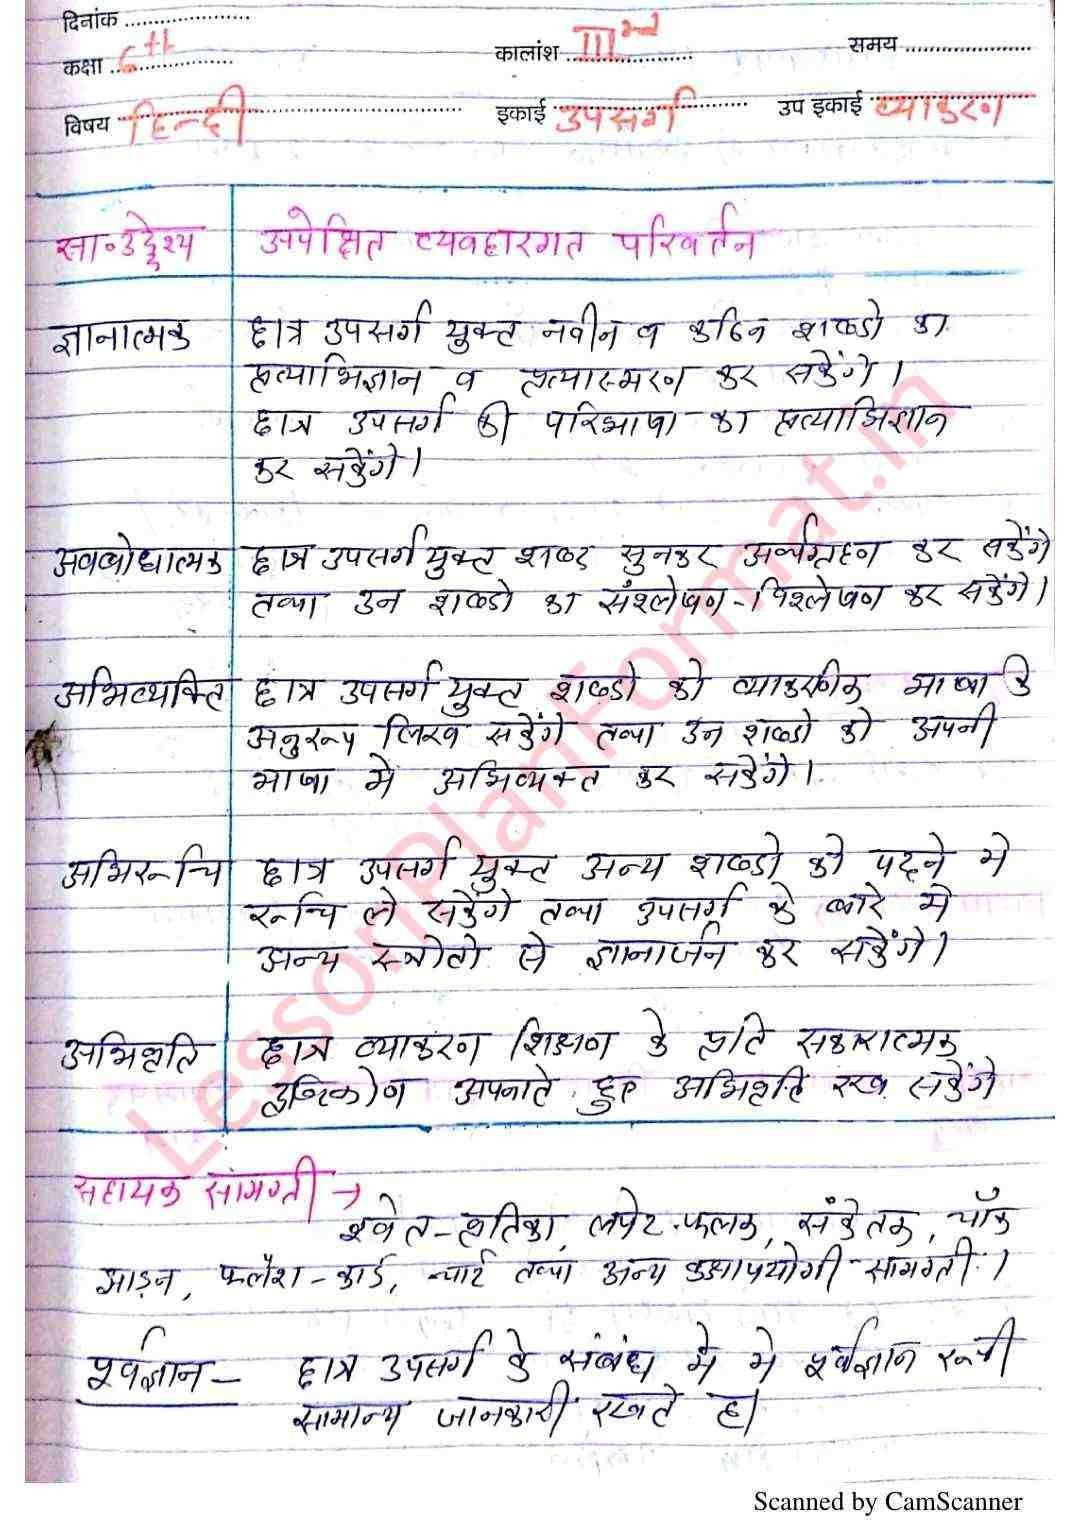 B Ed Lesson Plan In Hindi Class 2 2 Things To Avoid In B Ed Lesson Plan In Hindi Class 2 Lesson Plan In Hindi English Lesson Plans Lesson Plan Templates [ 1528 x 1080 Pixel ]